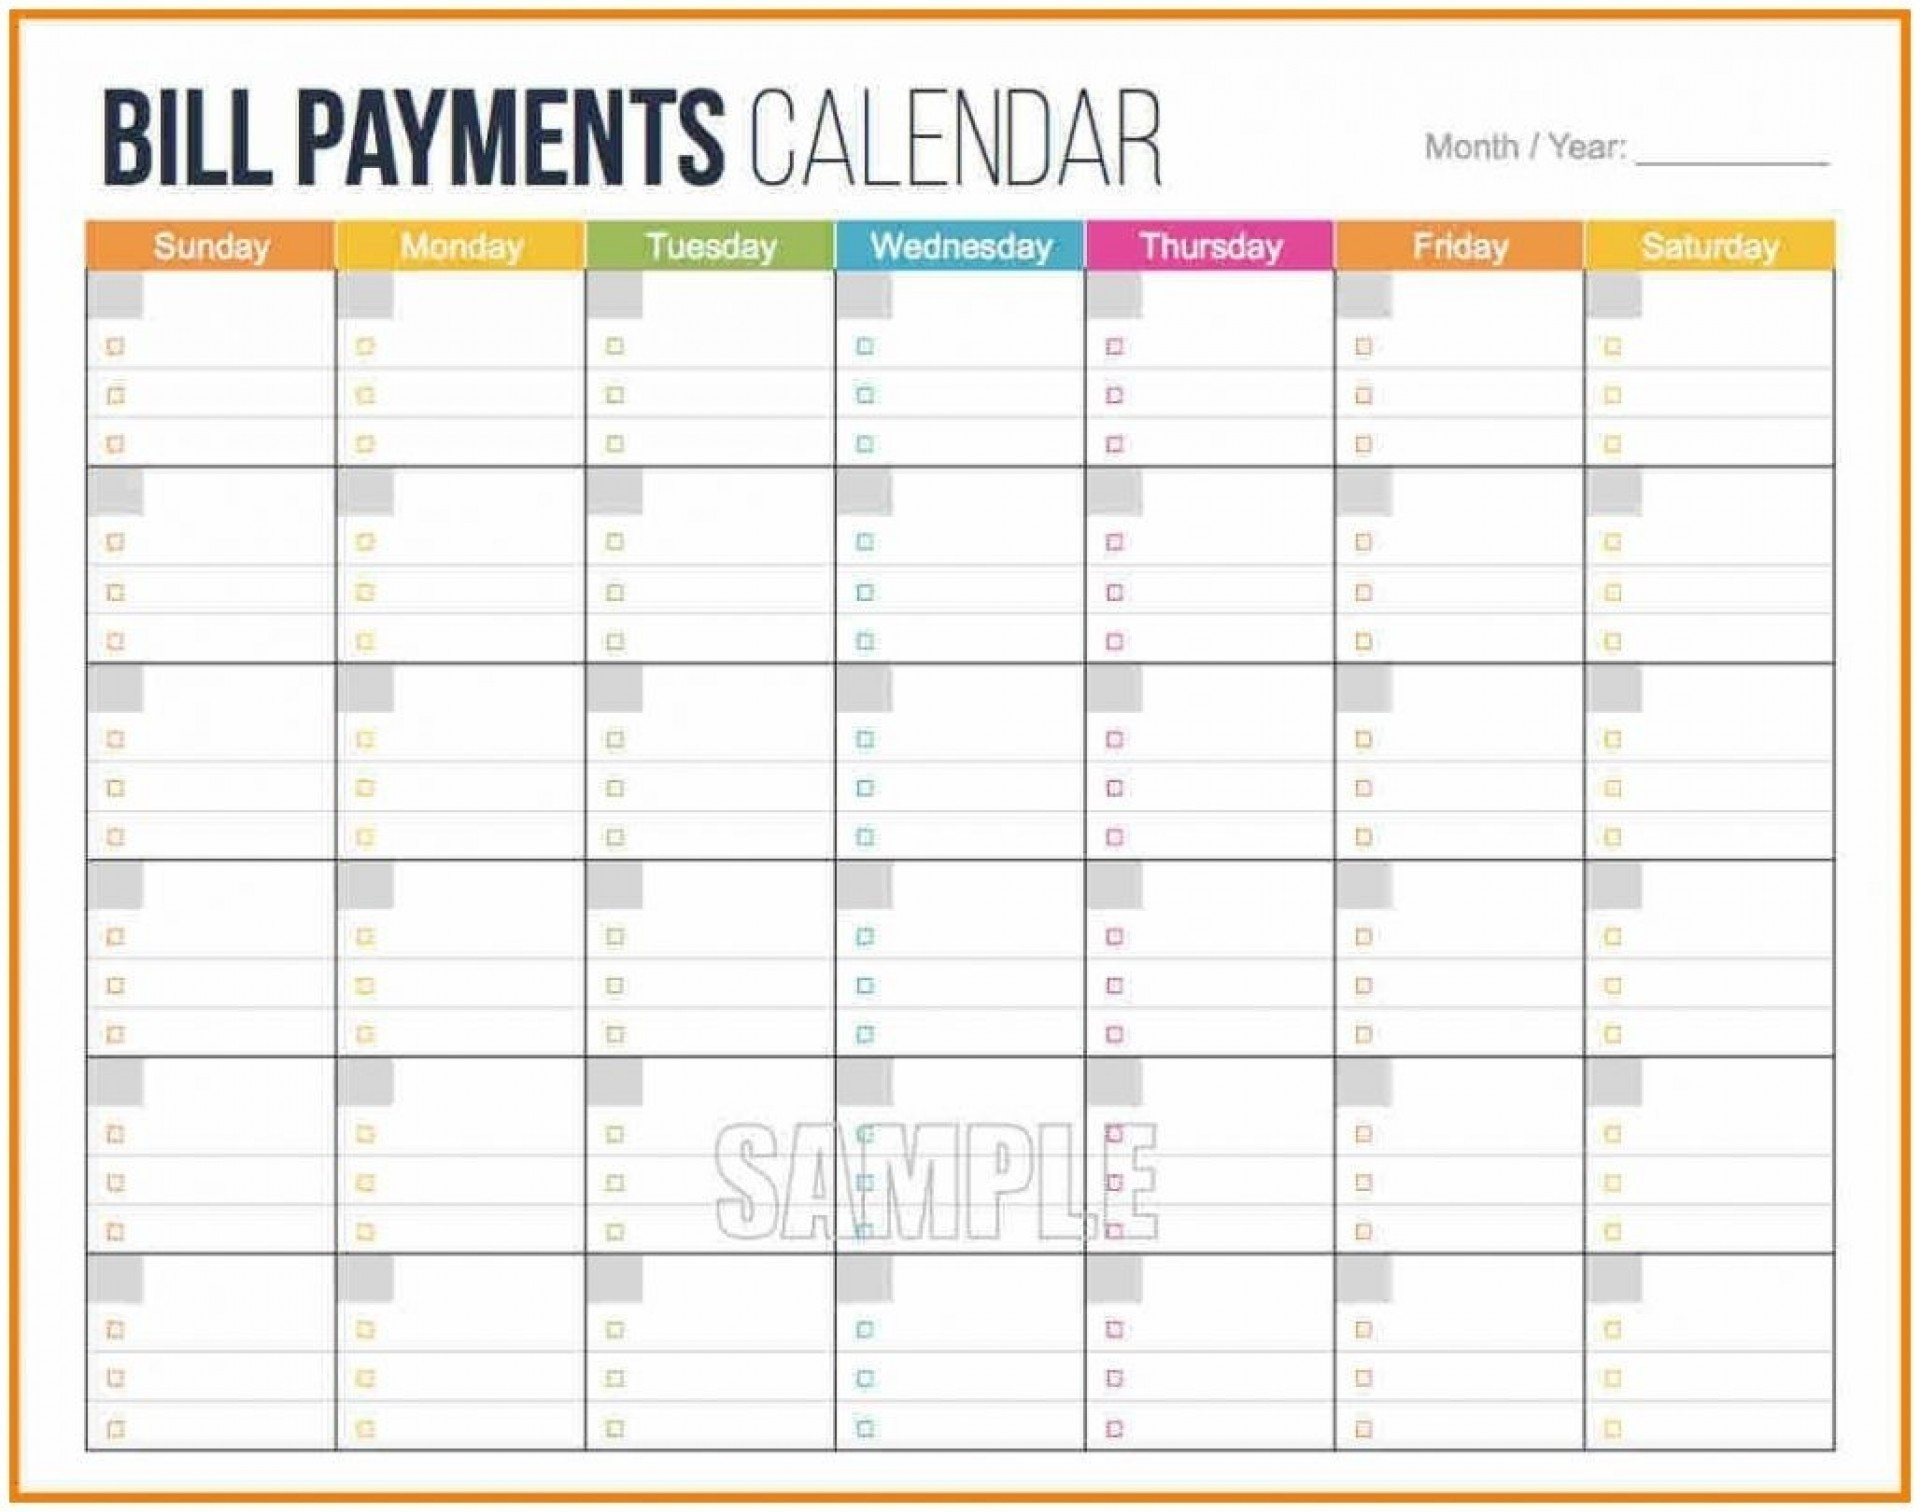 003 Bill Pay Calendar Template Ideas Paying Free Printable-Billing Calendar Template 2020